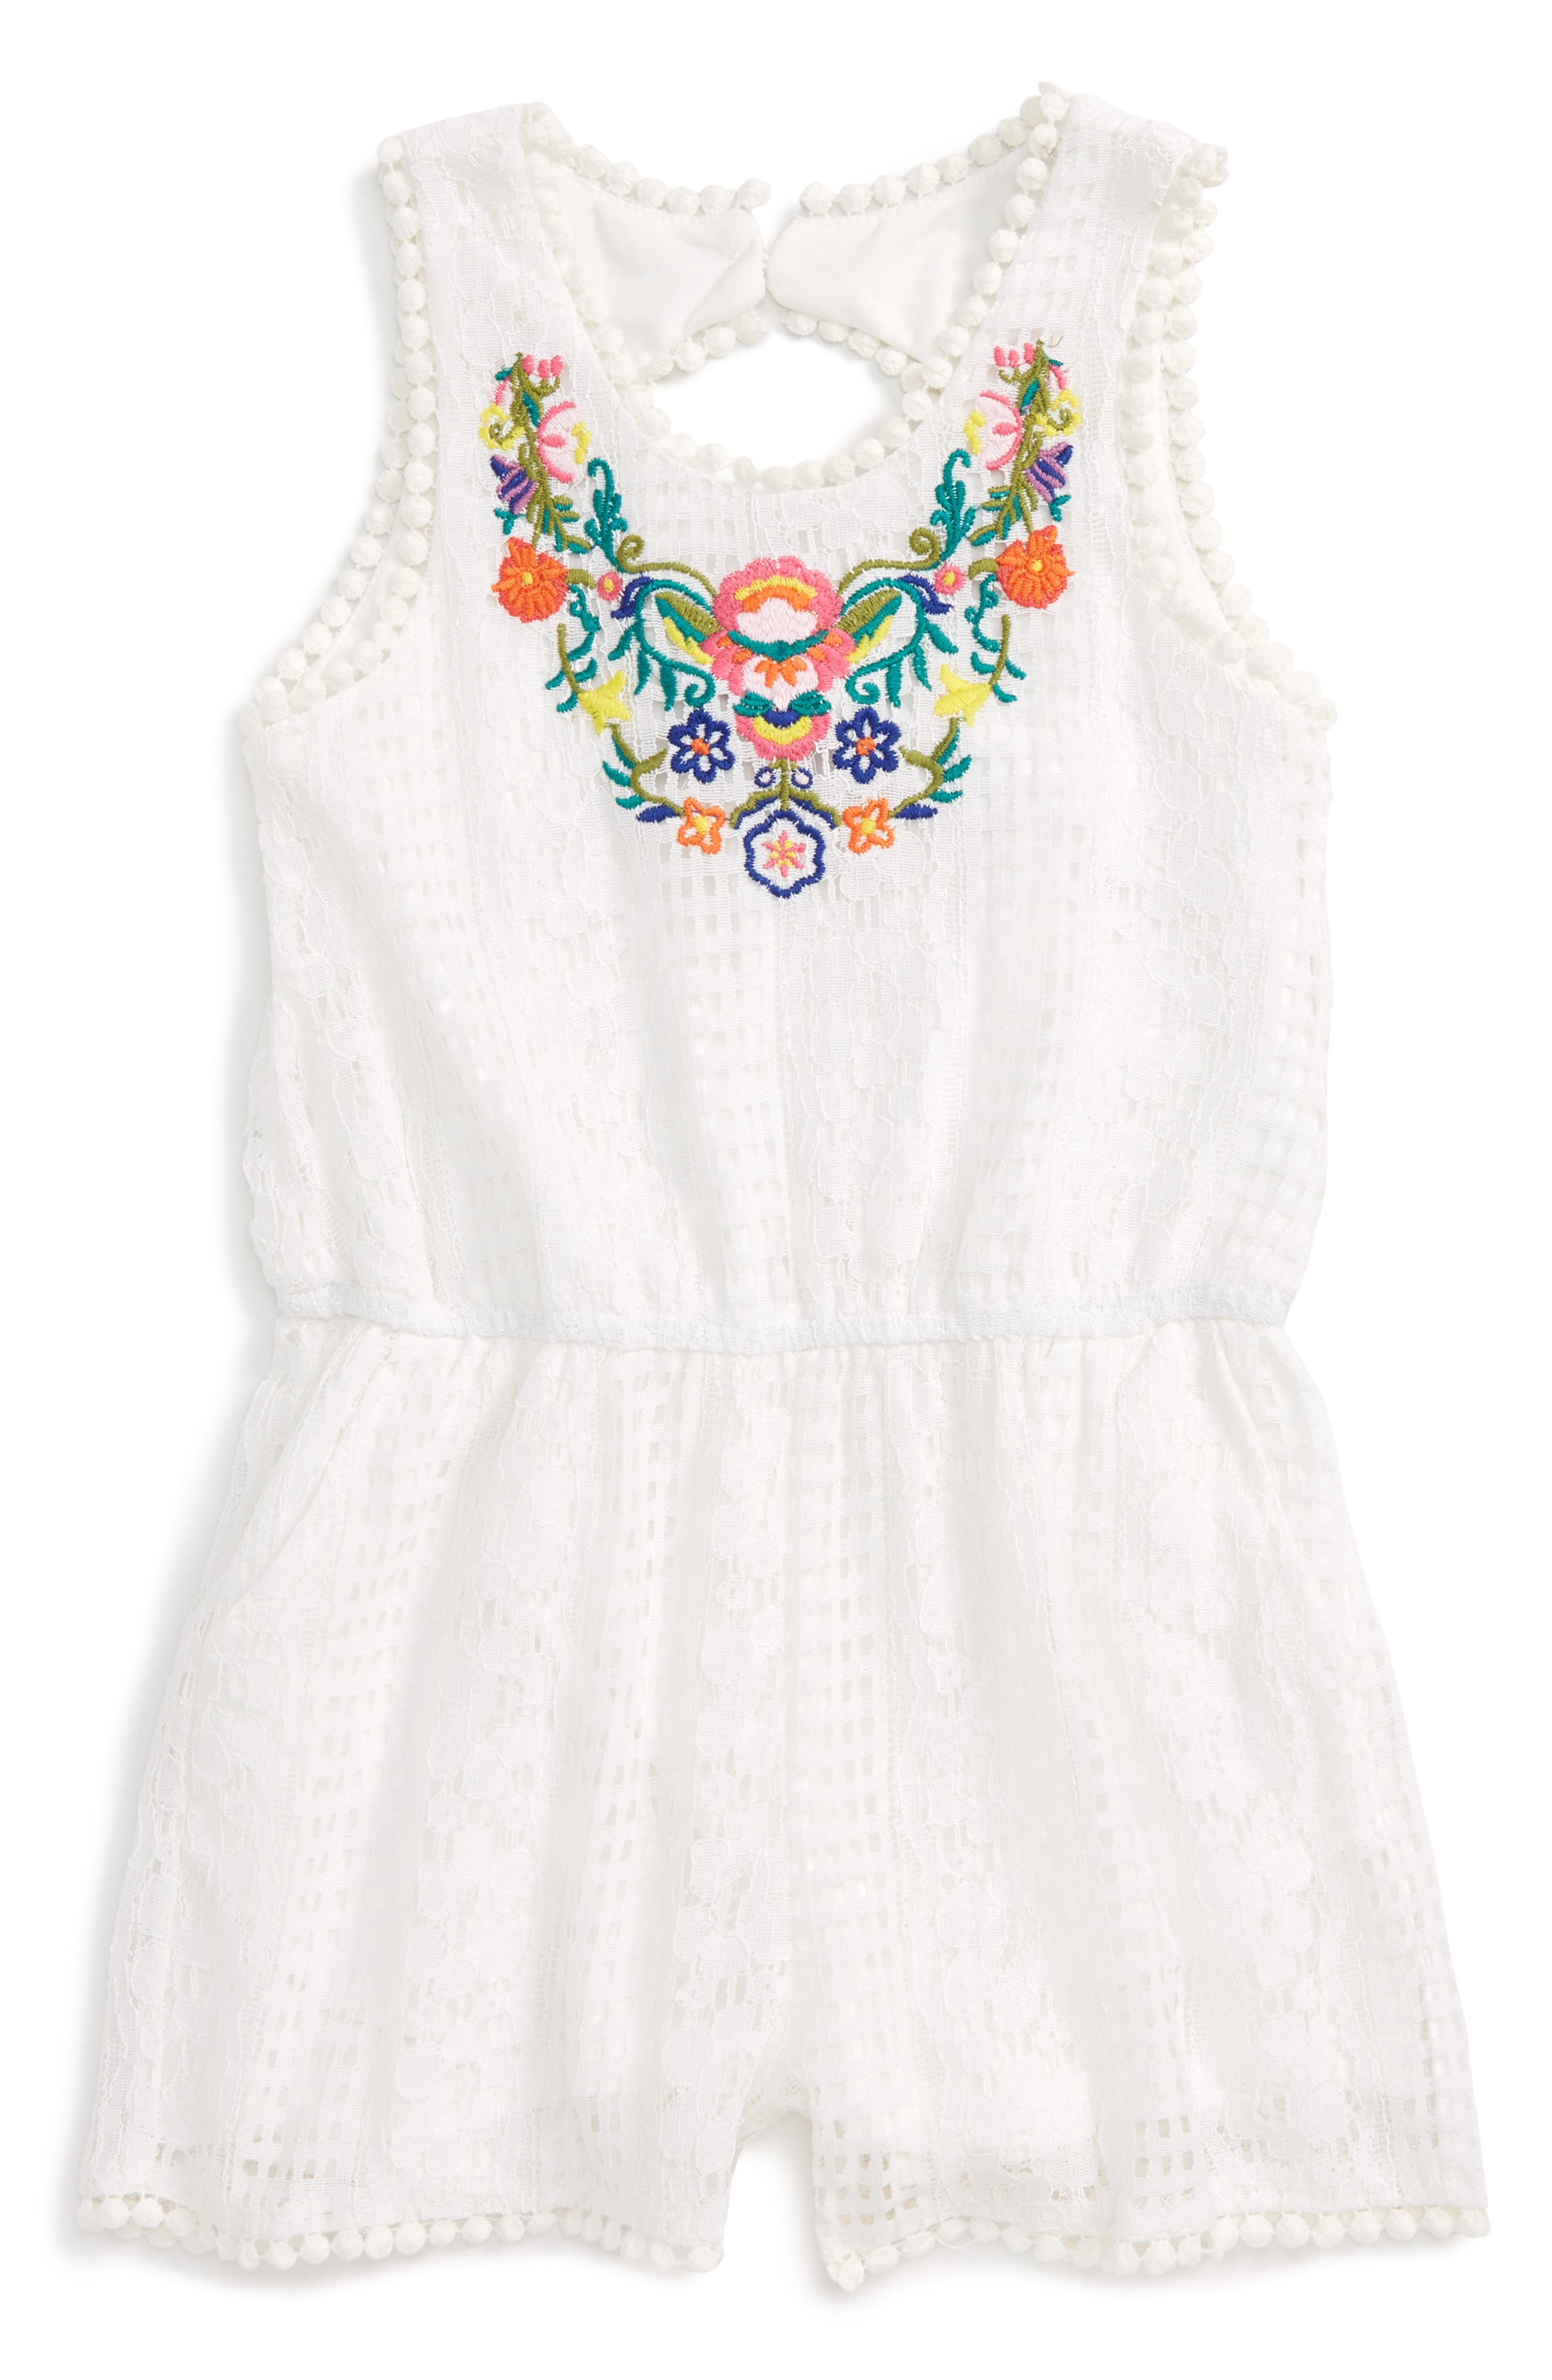 TRULY ME Embroidered Lace Romper